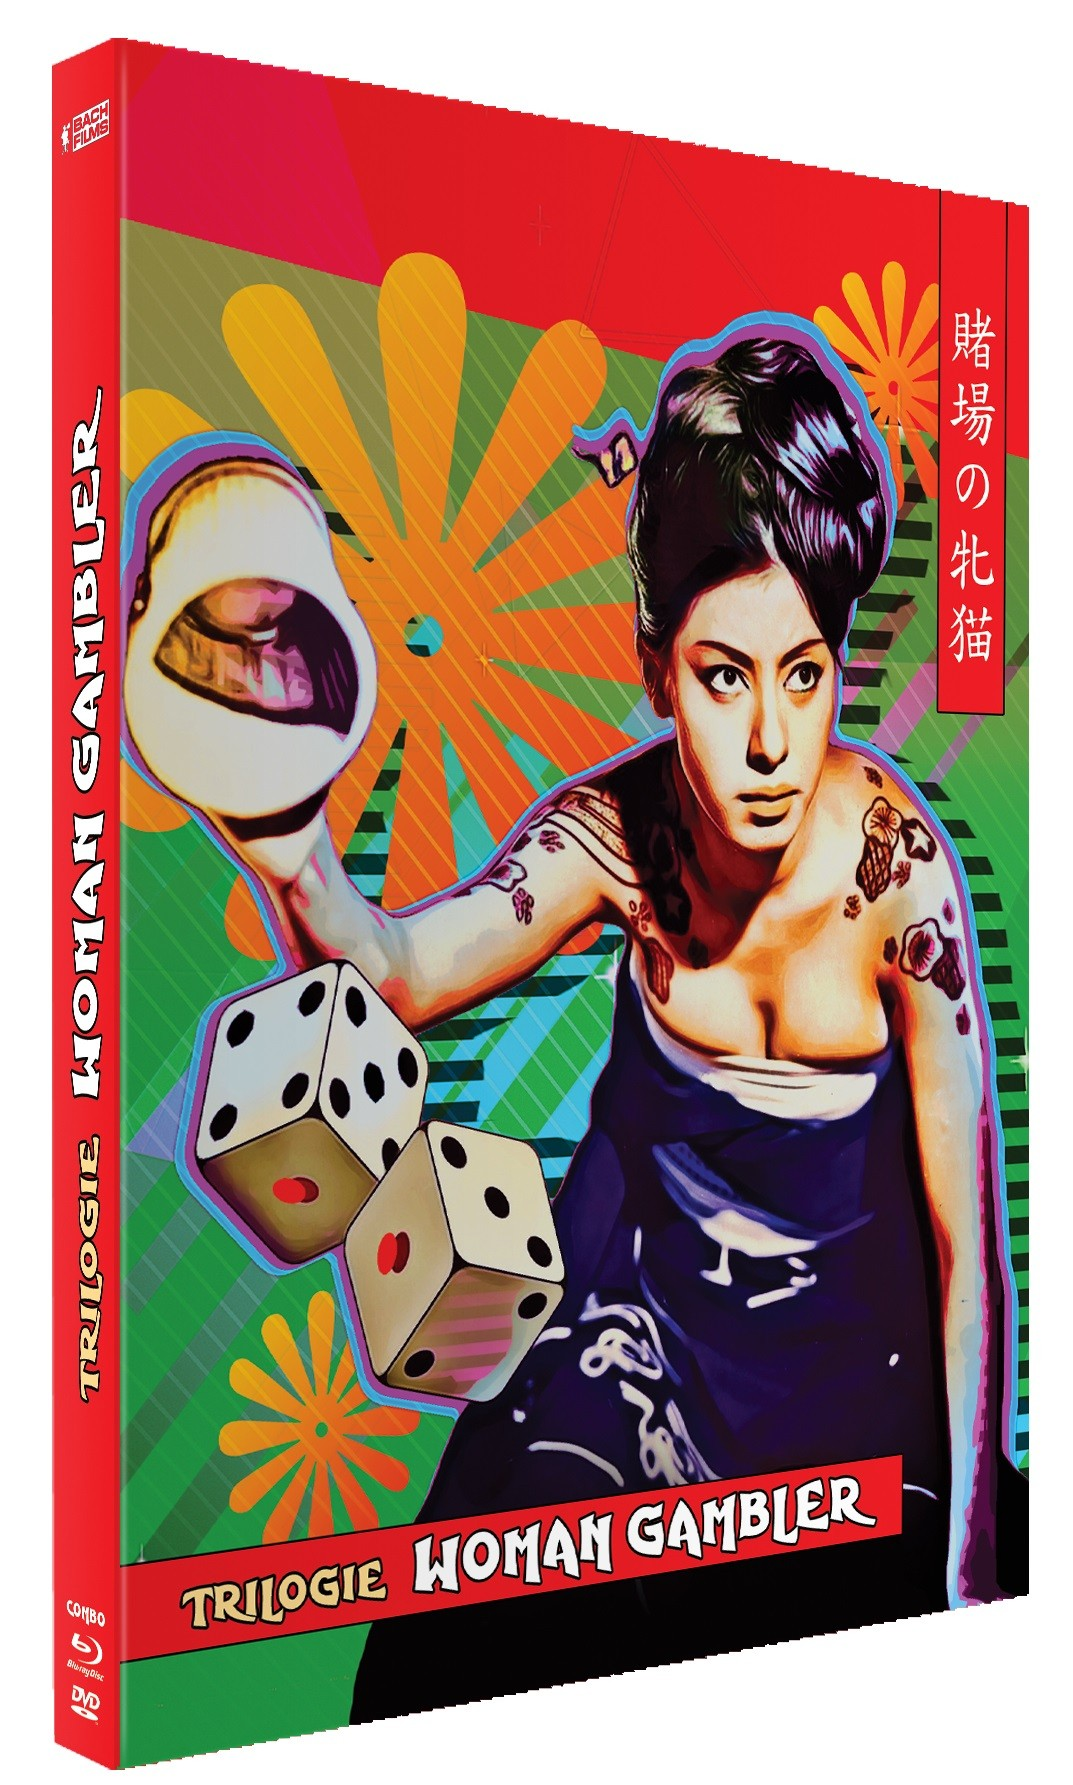 WOMAN GAMBLER COFFRET - THE CAT GAMBLER - WOMAN GABLER - REVENGE OF THE WOMAN GAMBLER